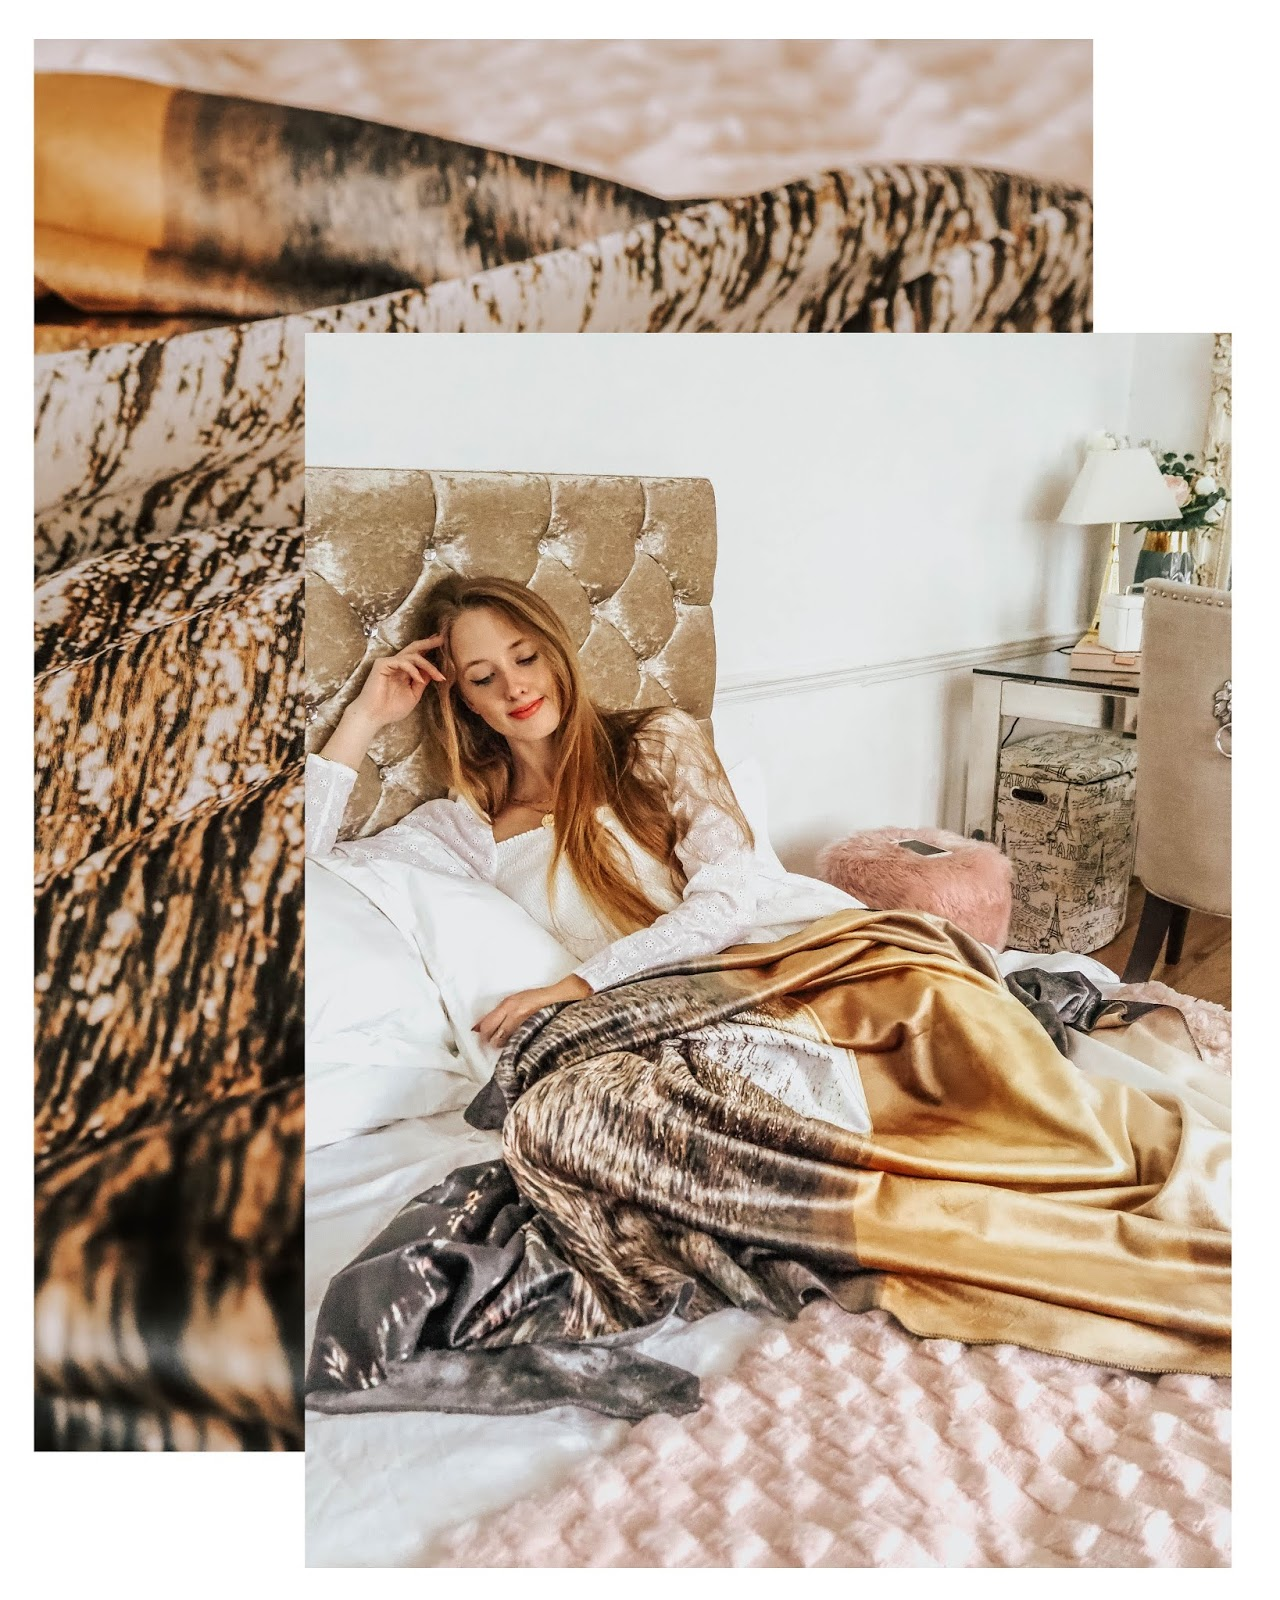 My-picture.co.uk personalised fleece blanket review